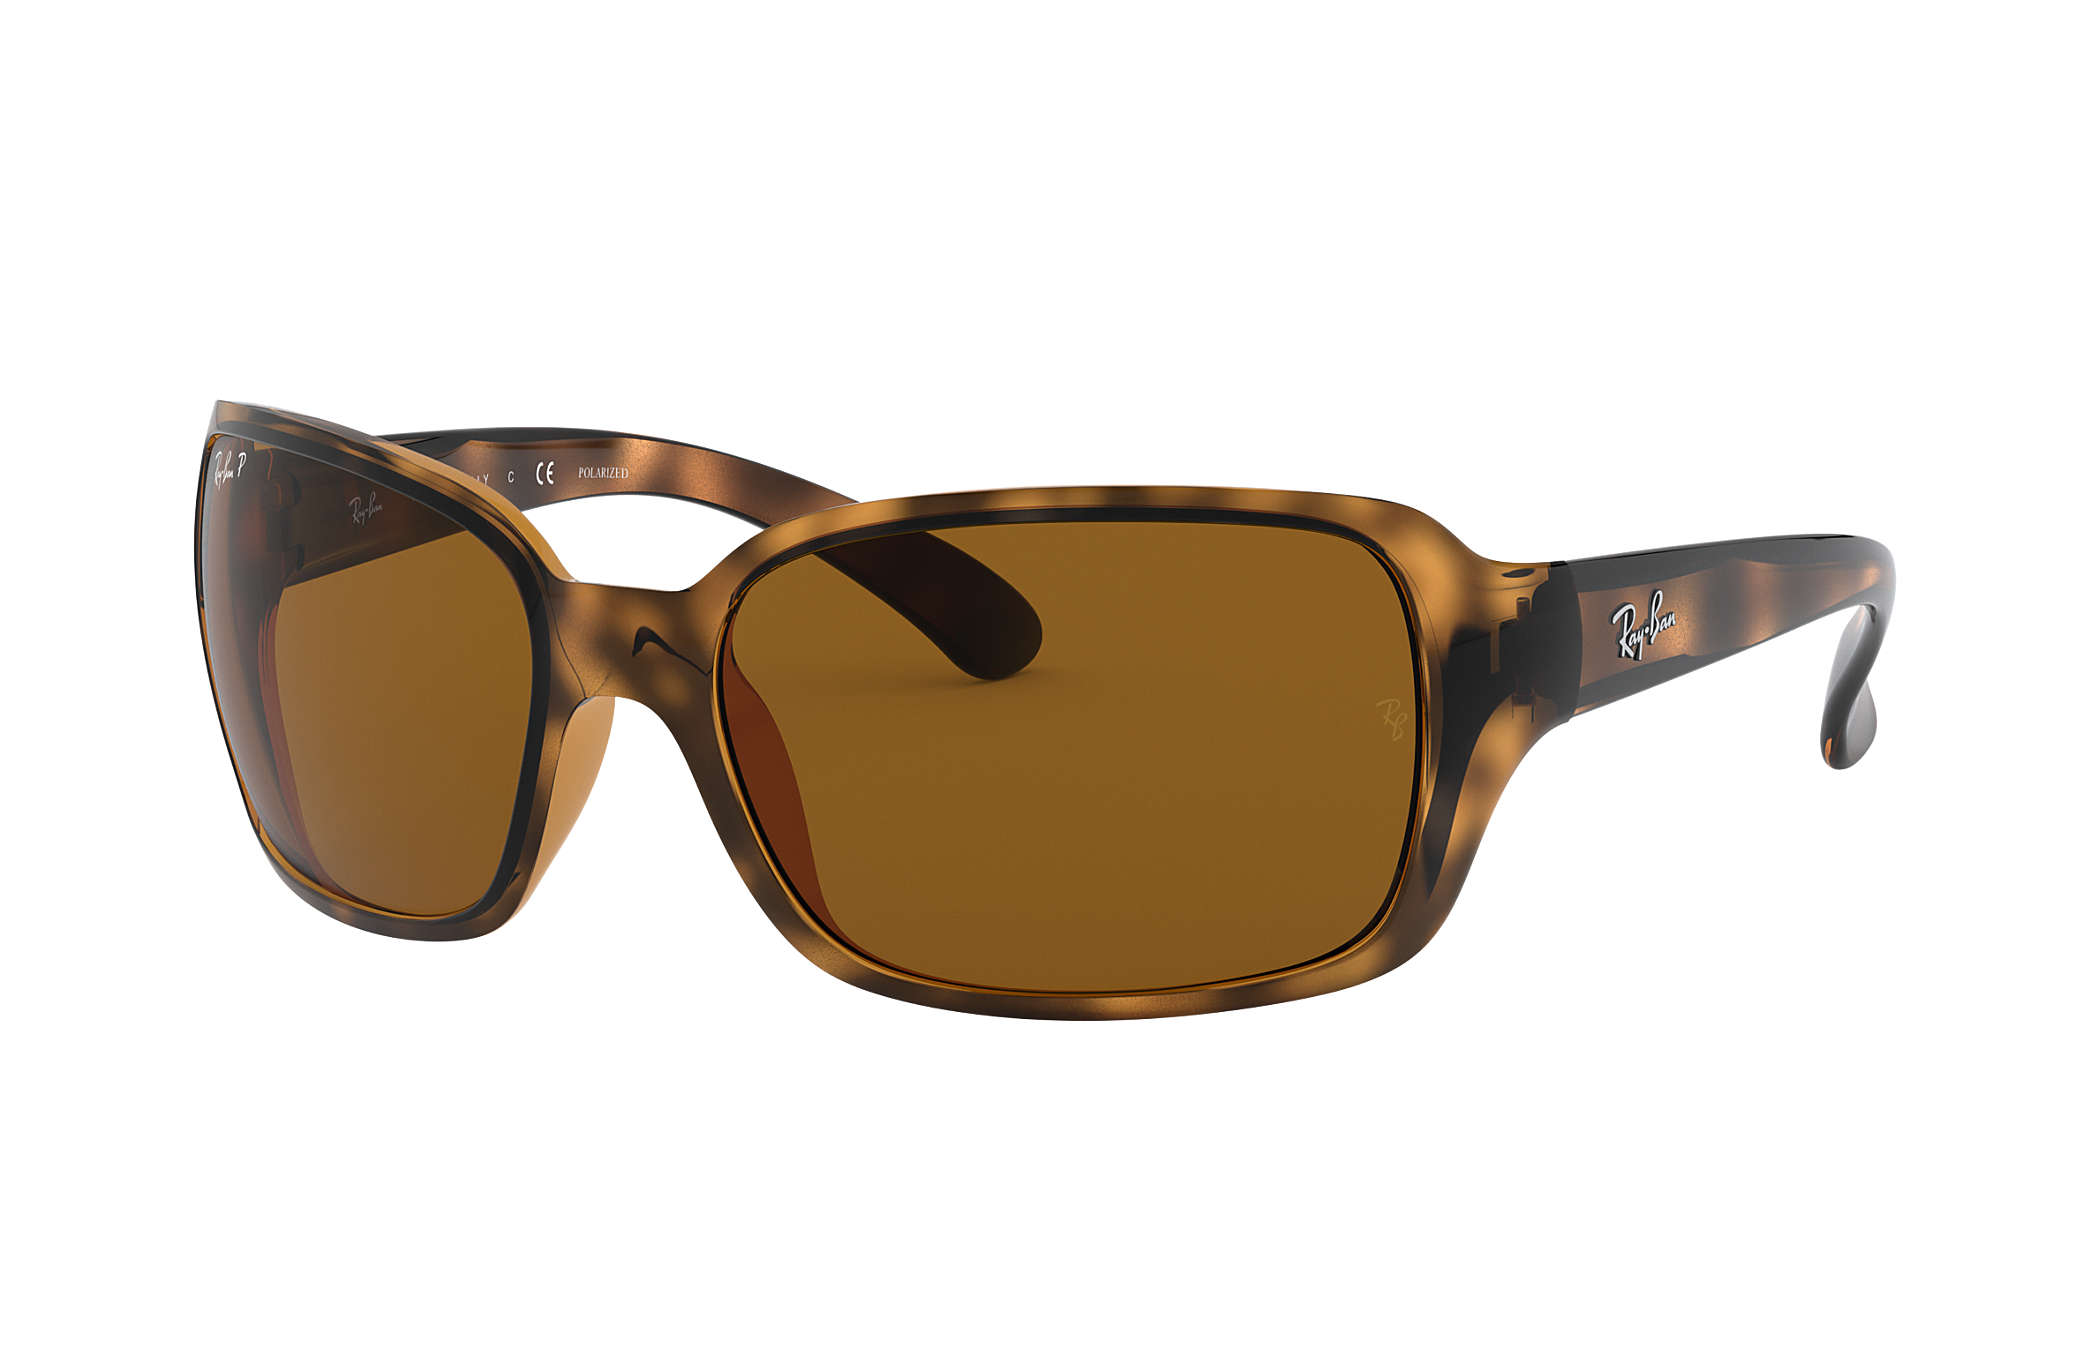 f8460045d3833 Ray-Ban RB4068 Tortoise - Nylon - Brown Polarized Lenses ...